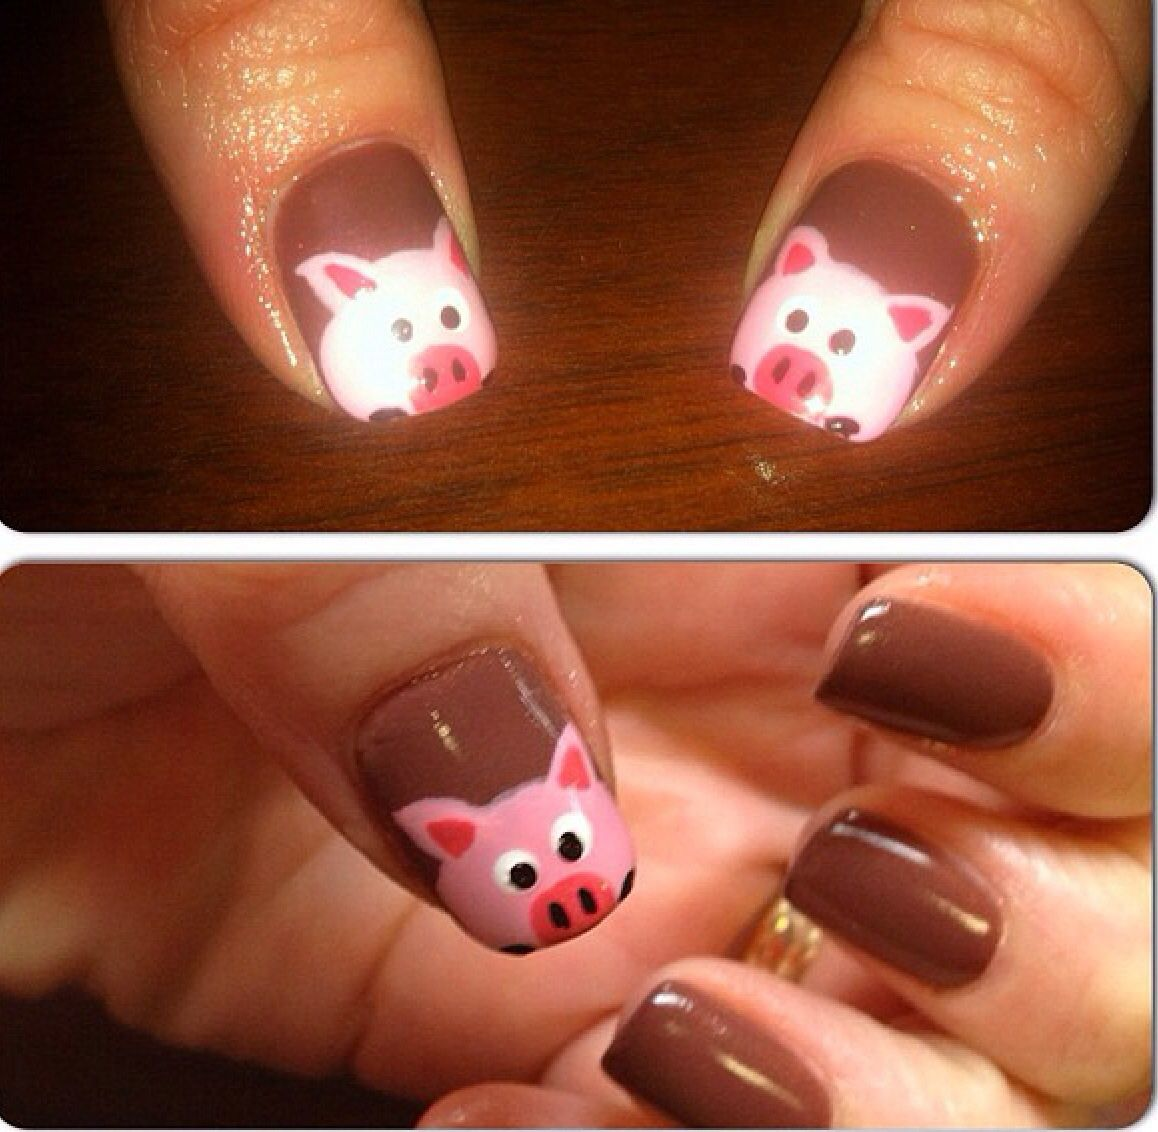 Pig Nail Art: NAiLs NAiLs NAiLs In 2019